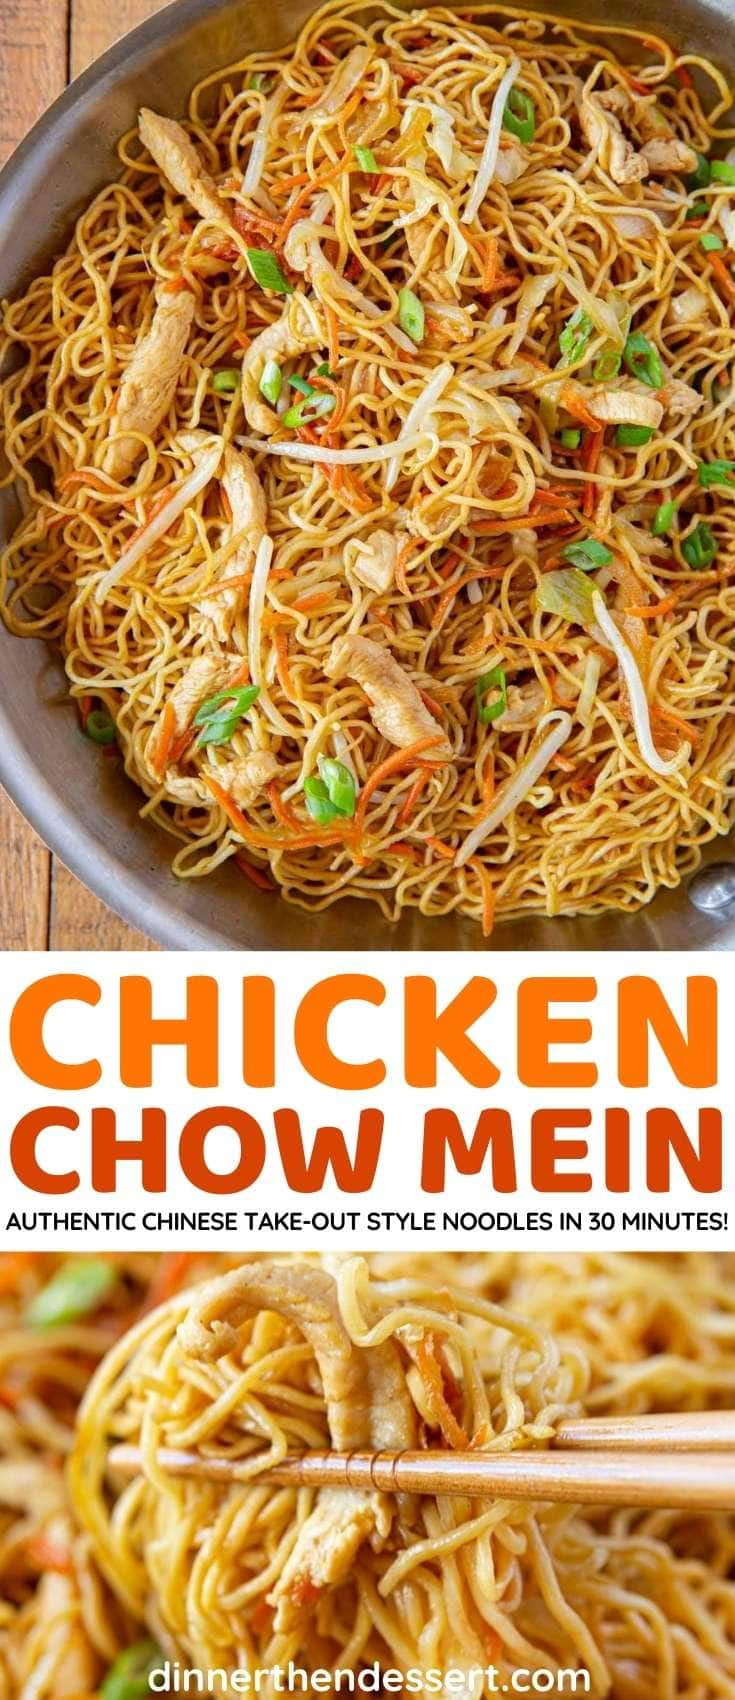 Chicken Chow Mein collage